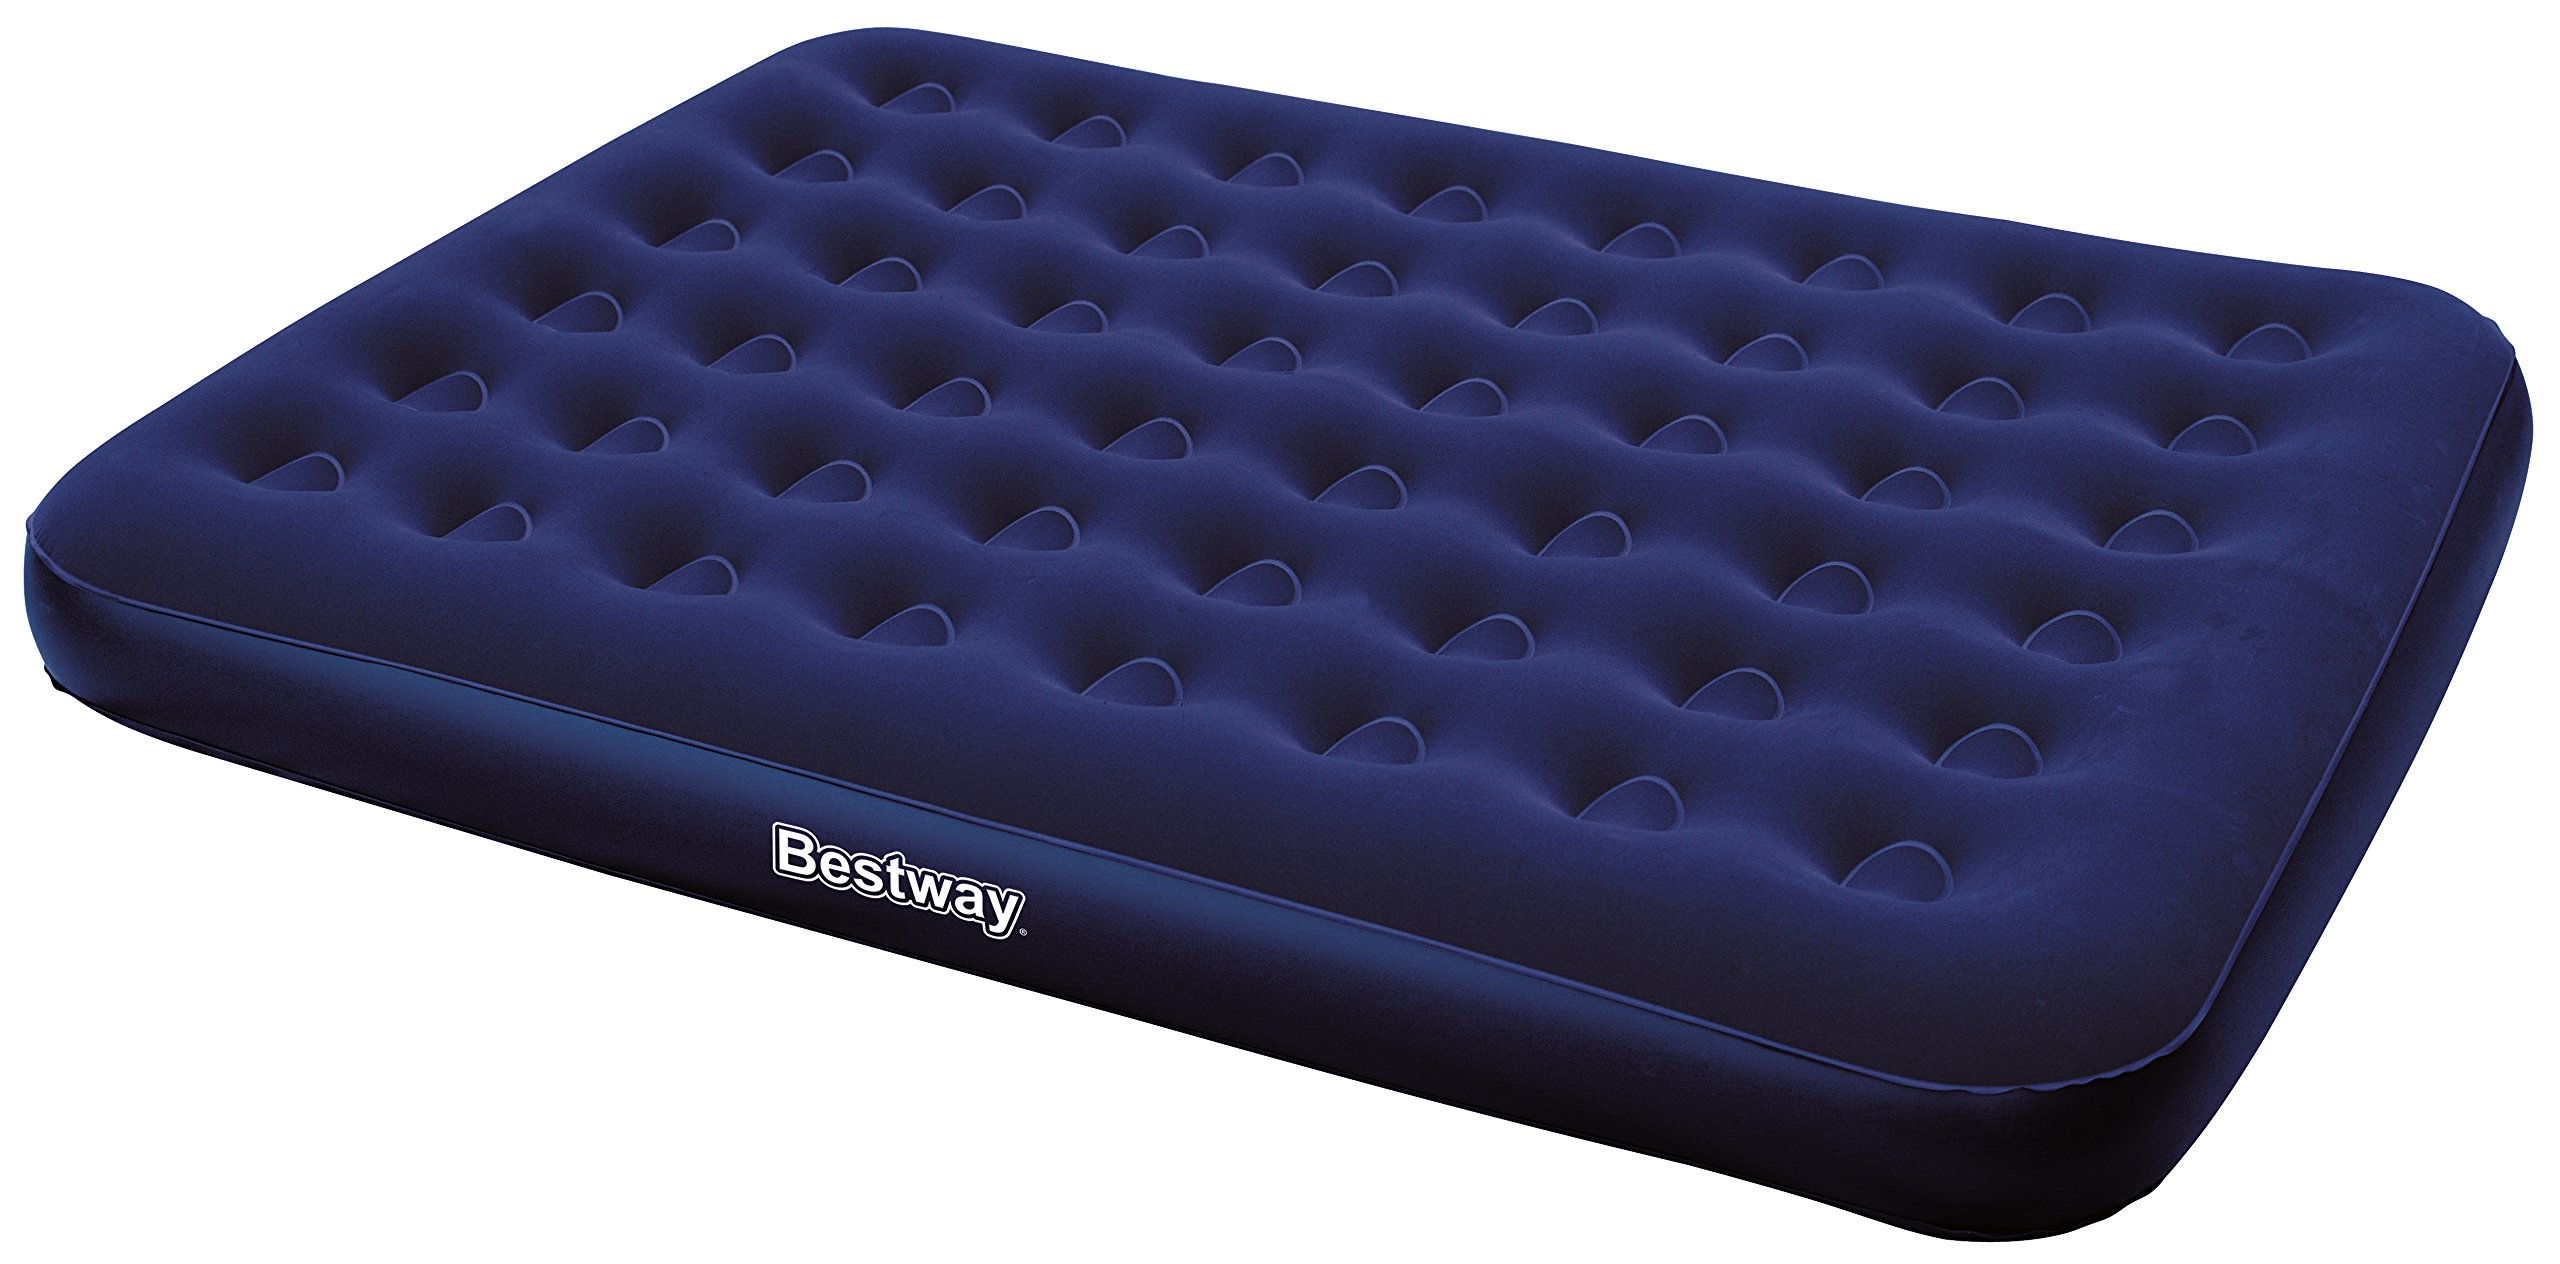 Bestway Flocked Queen Airbed without Inflation Pump, 80 x 60 x 8.5-Inch